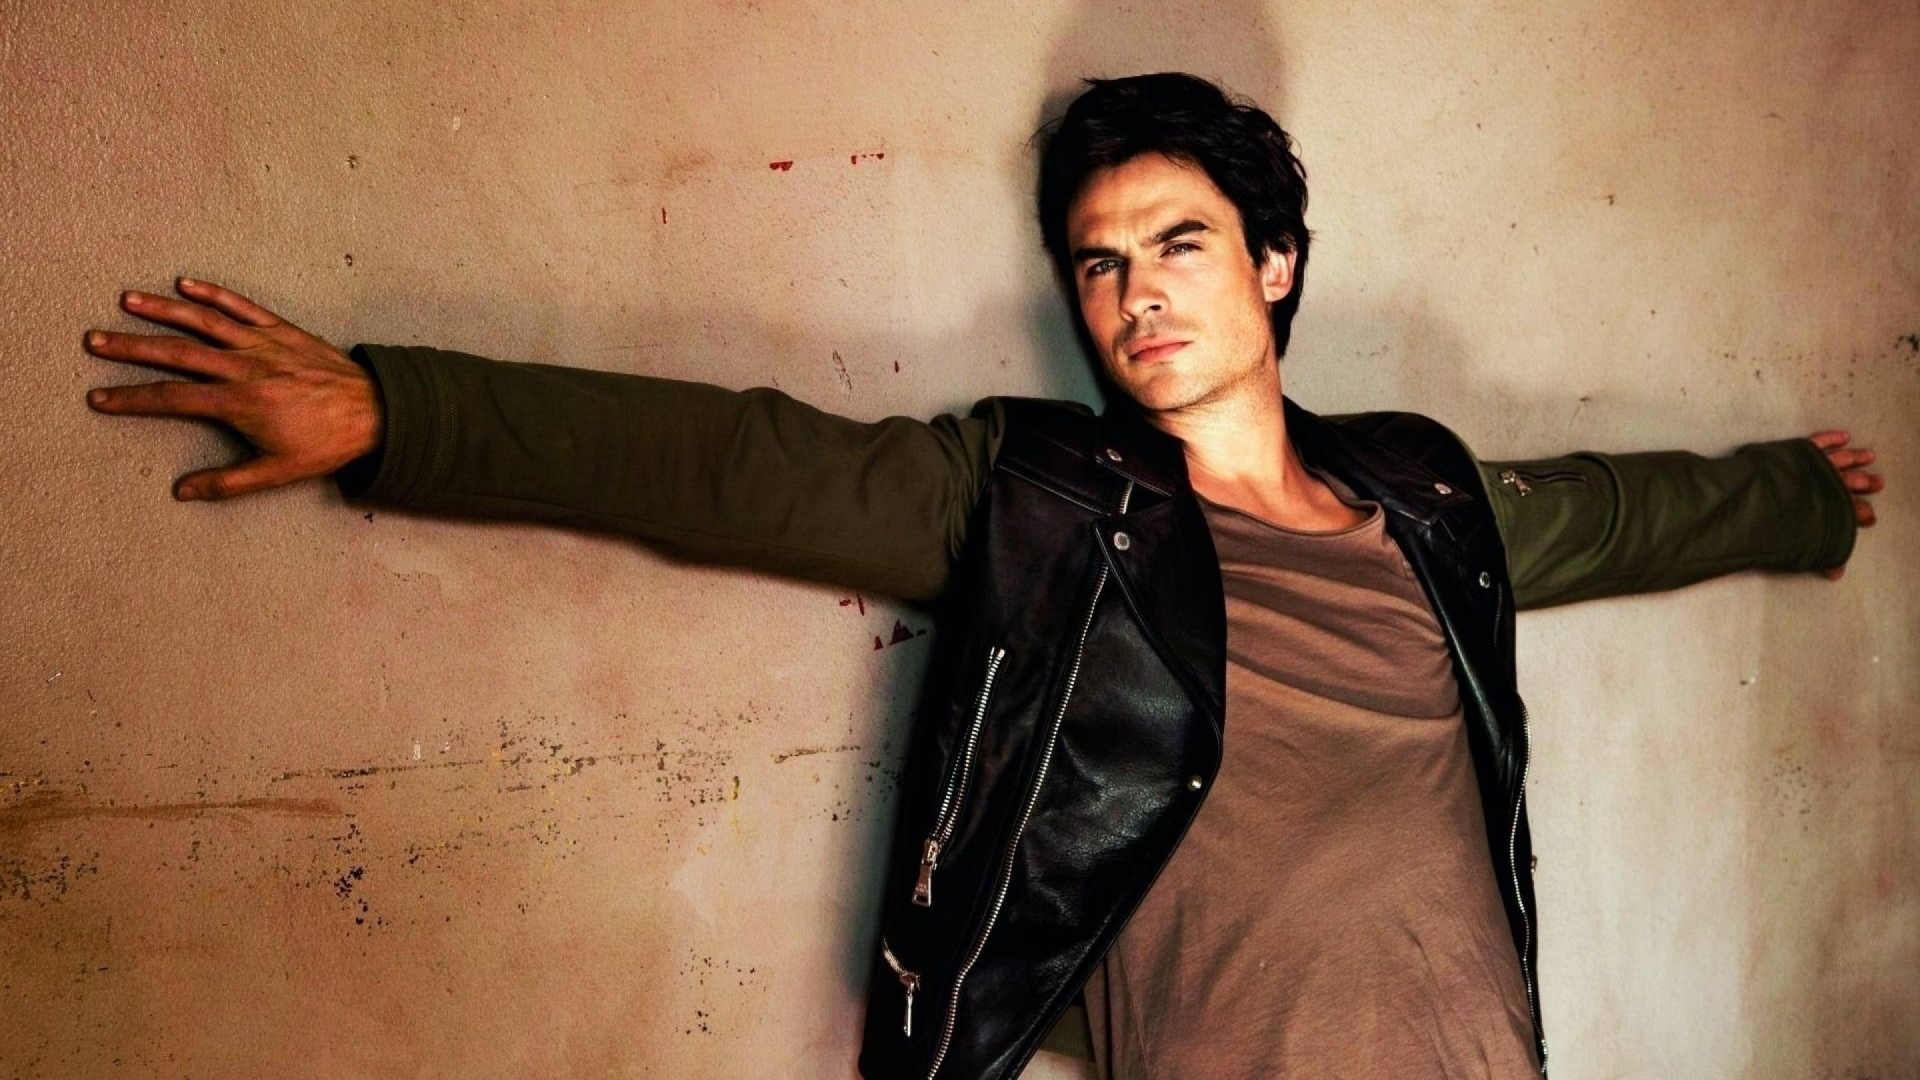 1920x1080 Ian Somerhalder Awesome Photo Shoot Wallpapers 1080p Laptop Full Hd Wallpaper Hd Celebrities 4k Wallpapers Images Photos And Background